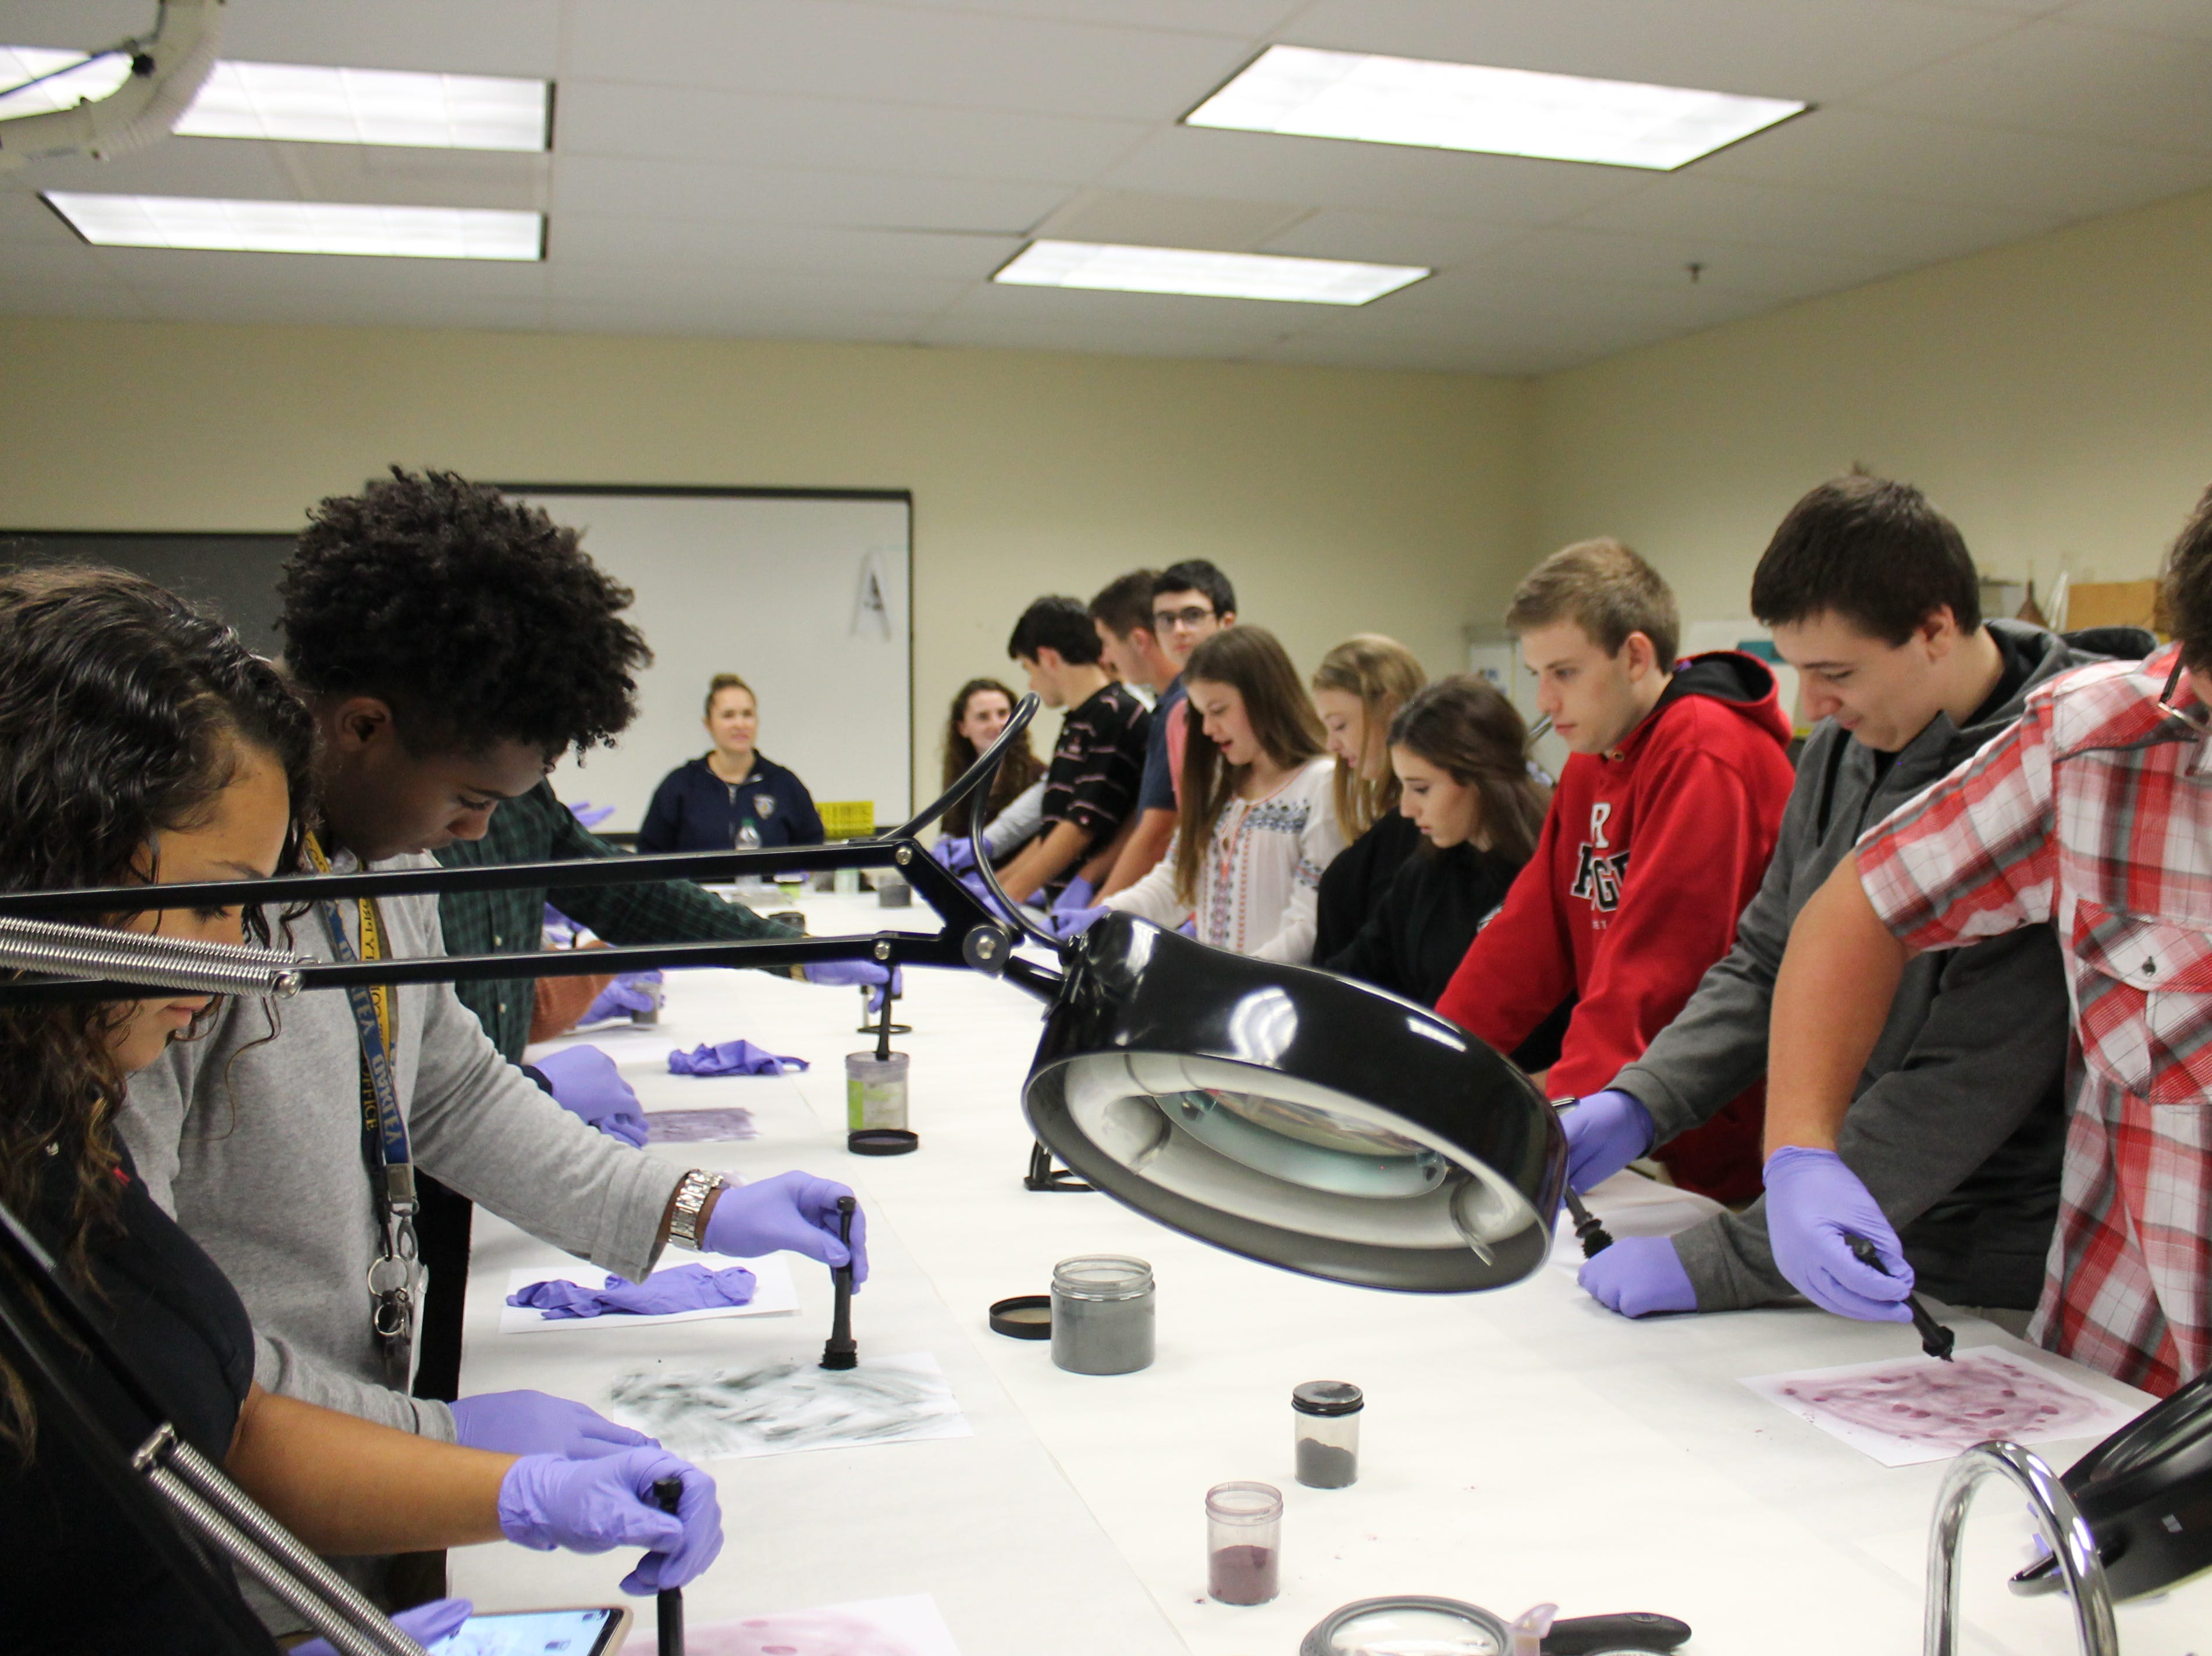 Students spent time dusting fingerprints and identifying the different types of fingerprint classifications.